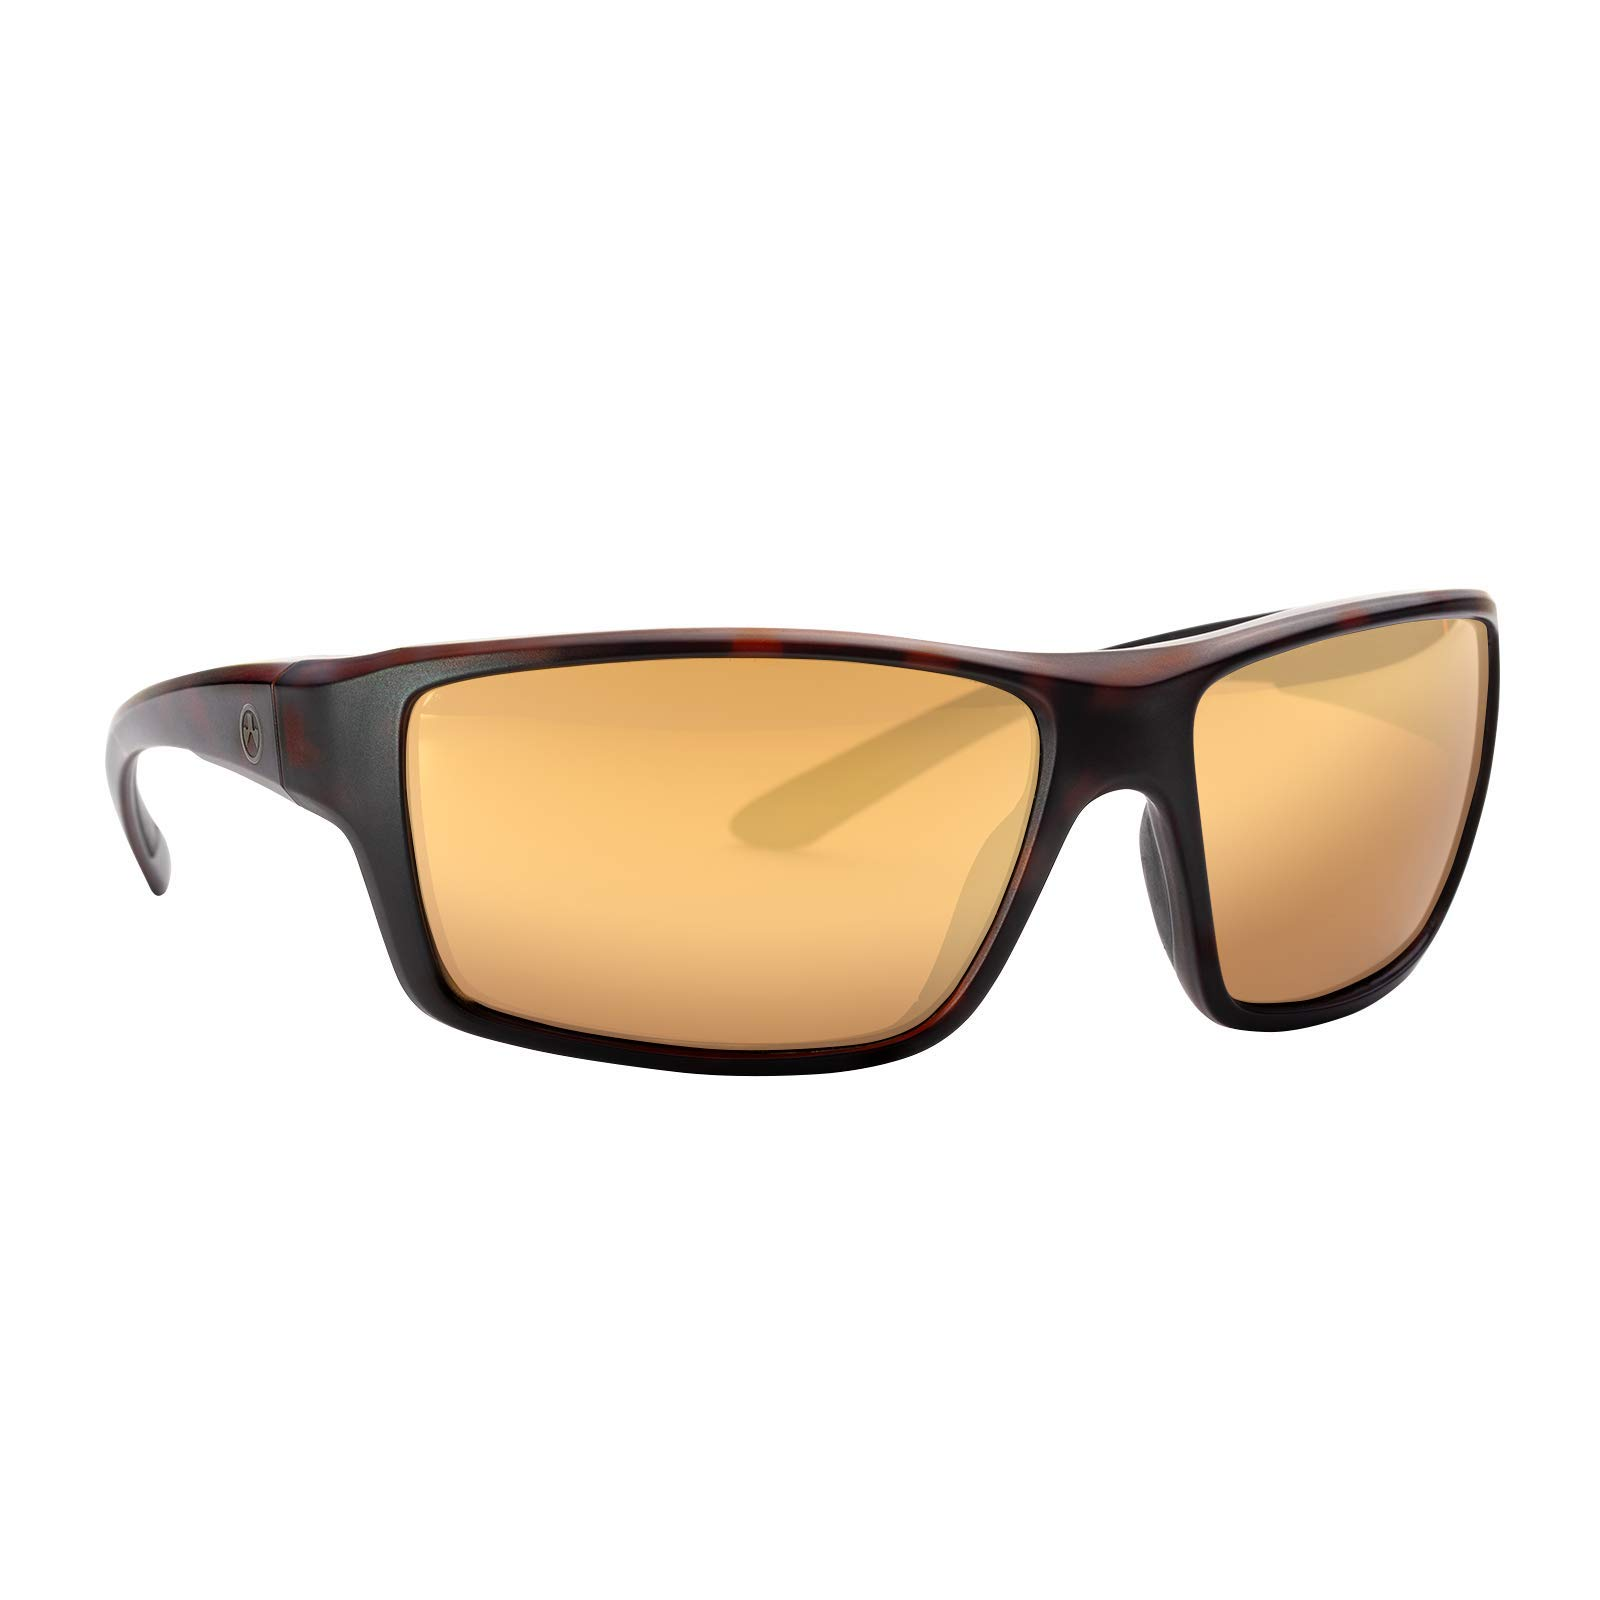 Magpul Summit Sunglasses Frame/Bronze Lens with Gold Mirror, Polarized, Tortoise, Bronze with Gold Mirror by Magpul